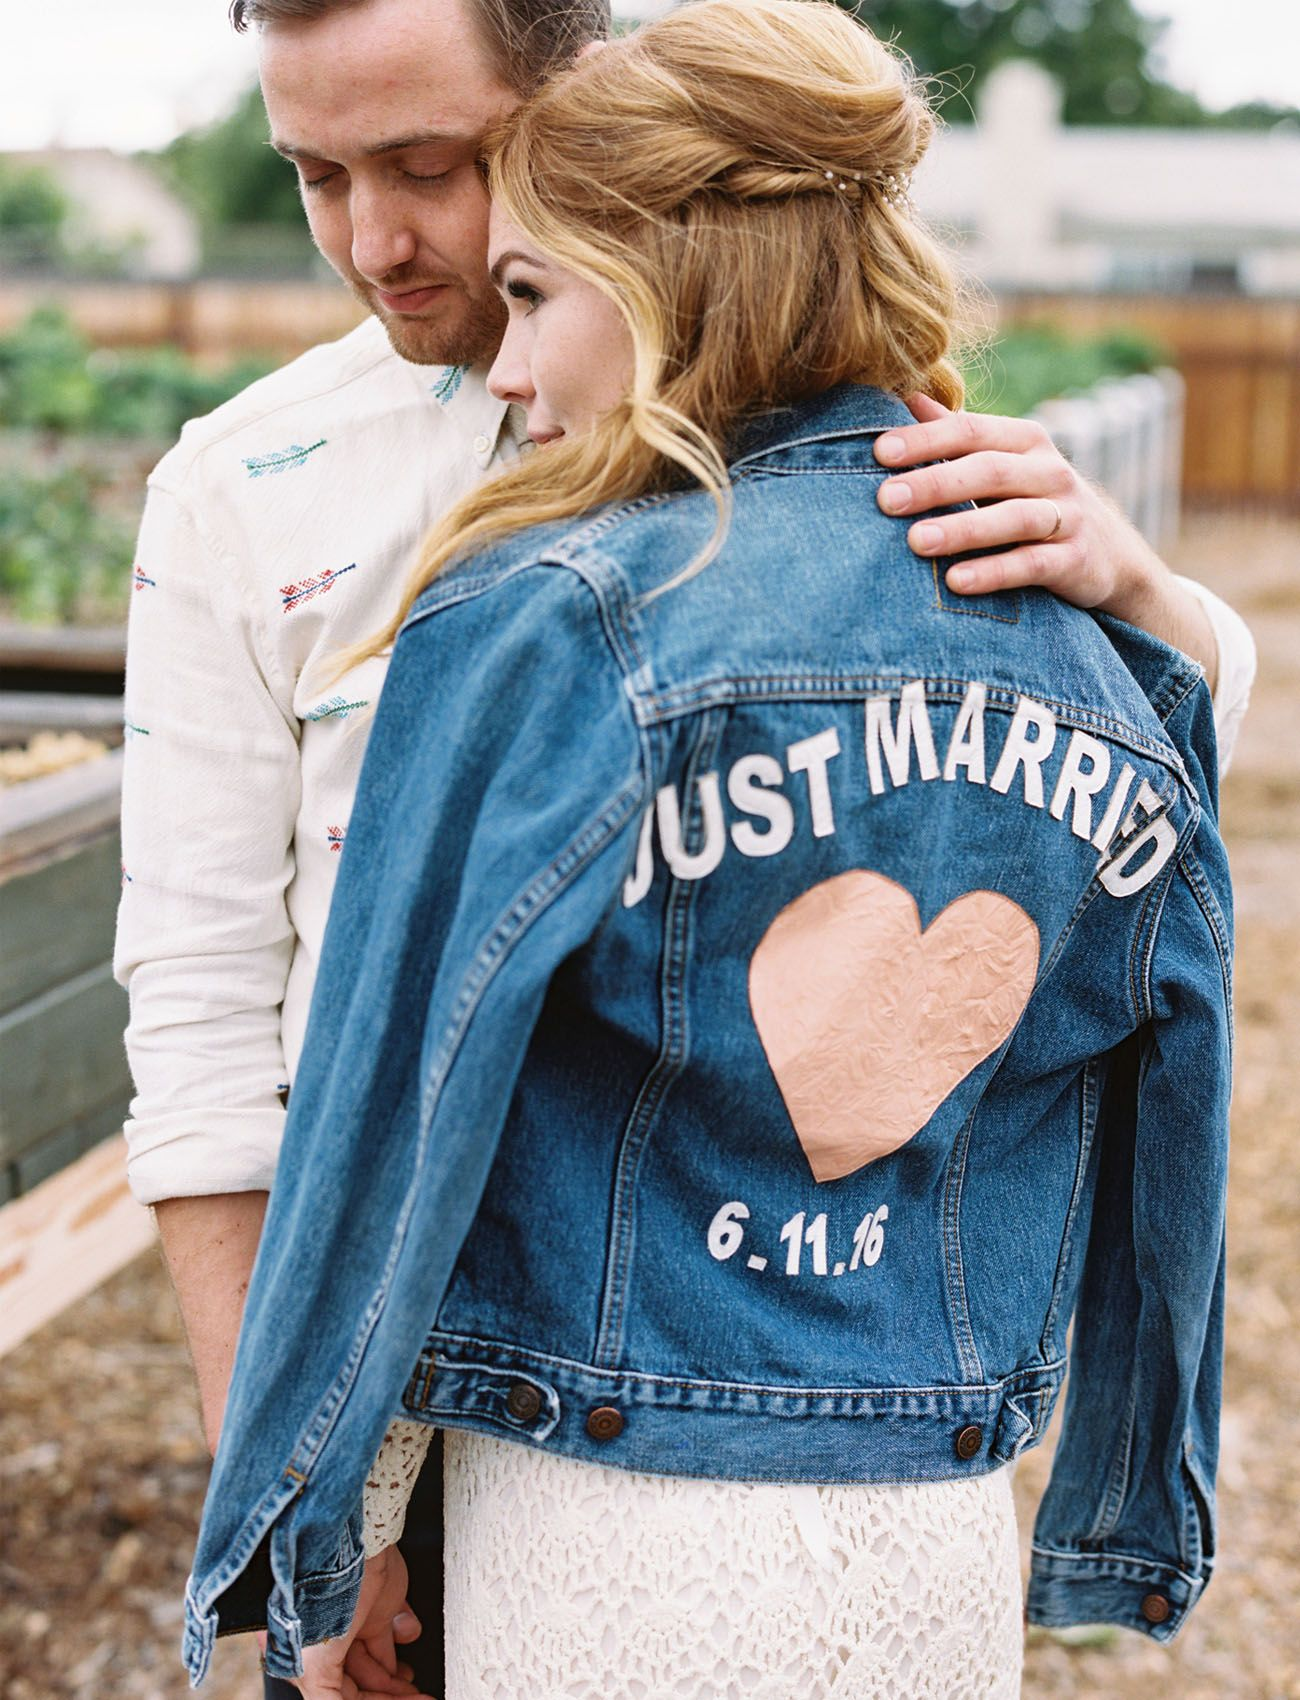 Boho Vintage Urban Farm Wedding: Courtney + Eric | Pinterest ...